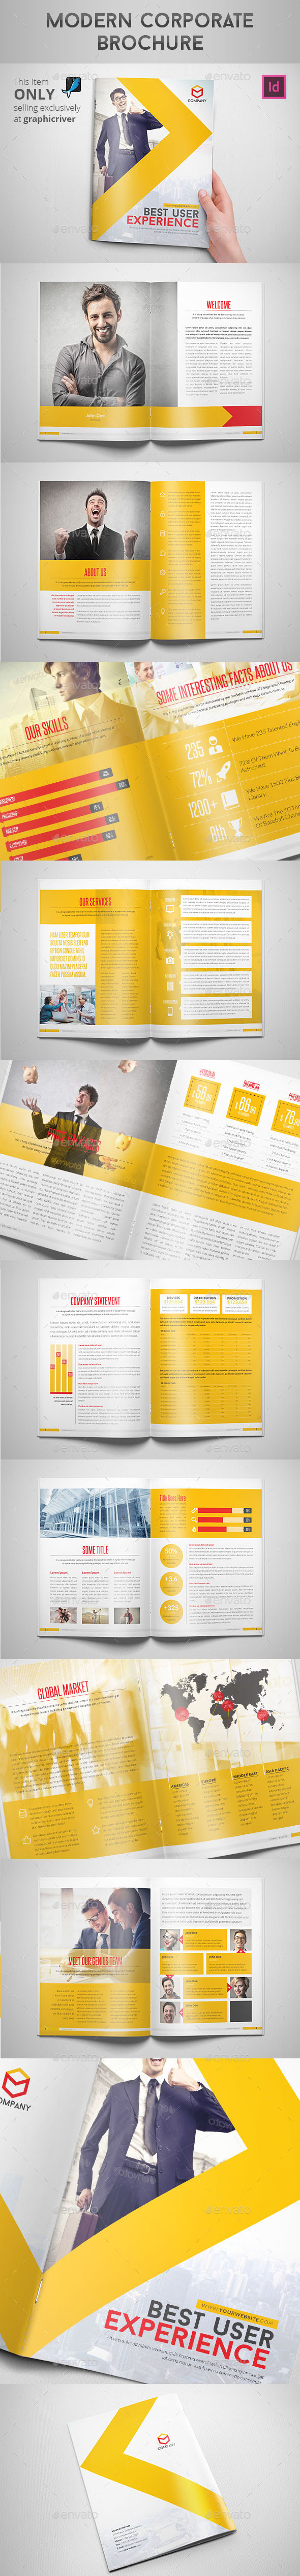 GraphicRiver Modern Corporate Brochure 8923626